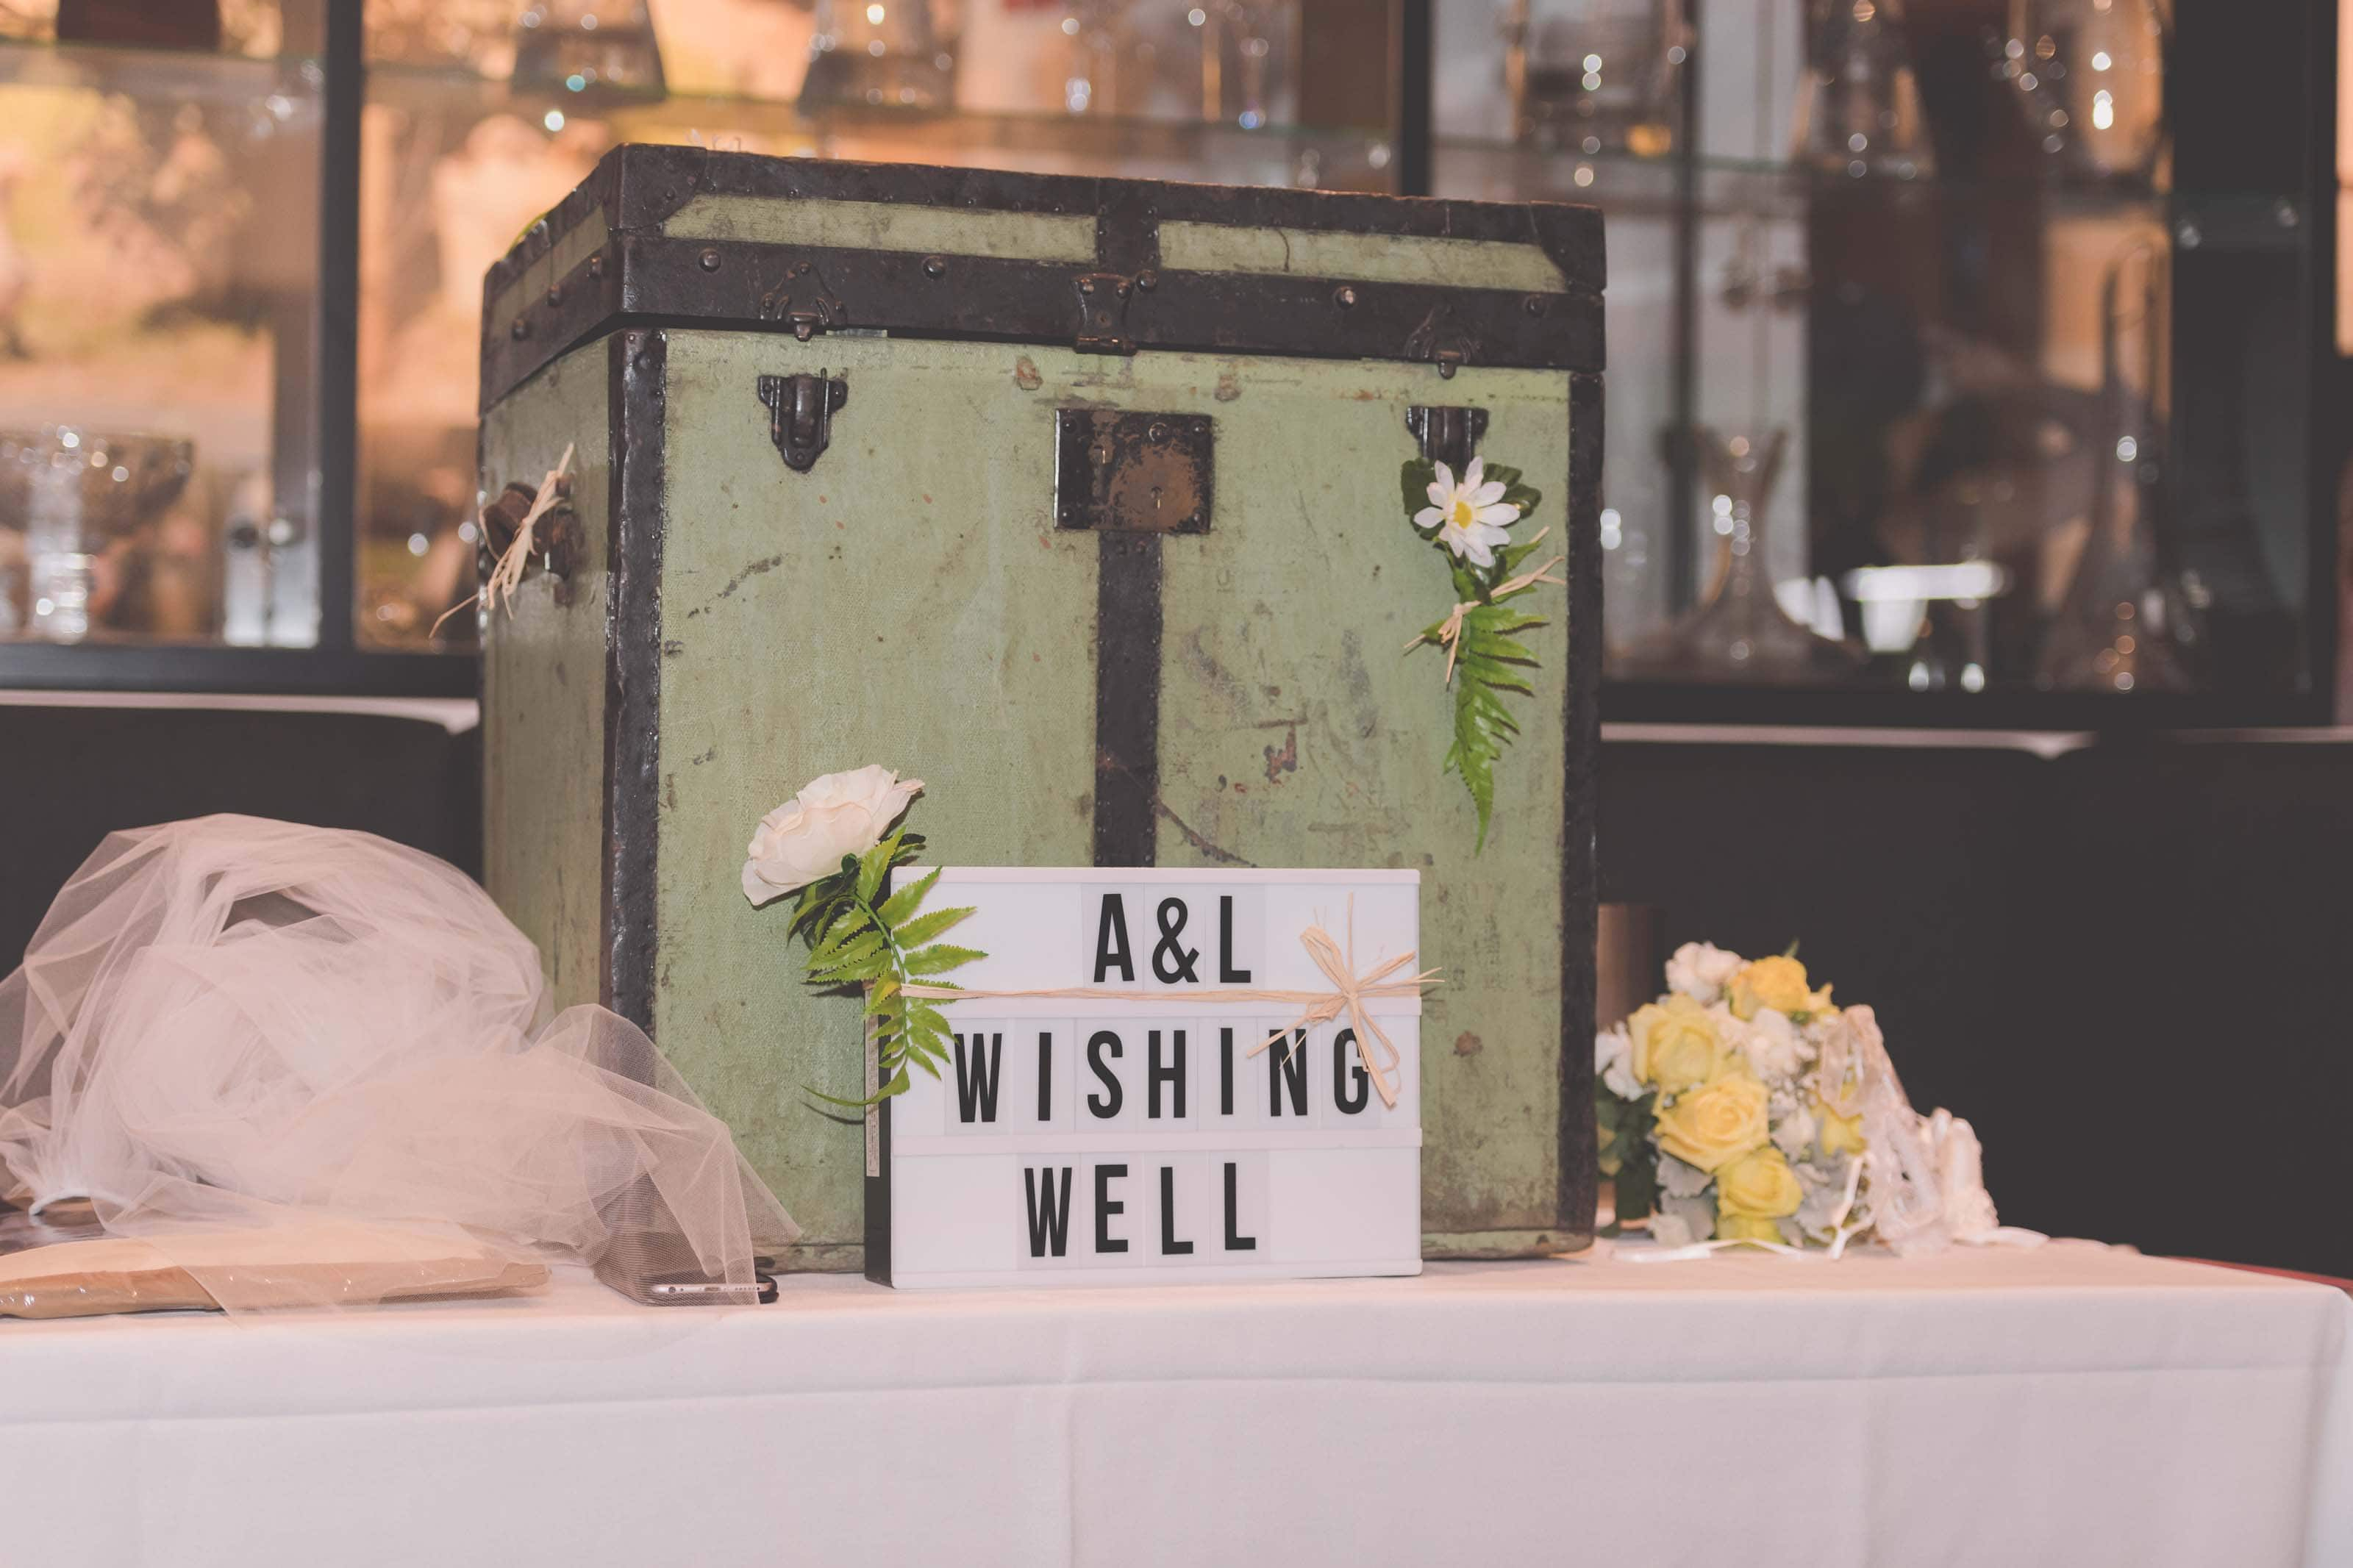 Wedding Photography Melbourne by Pause The Moment - A rustic gift box at a wedding - Paringa Estate Wedding Photographer